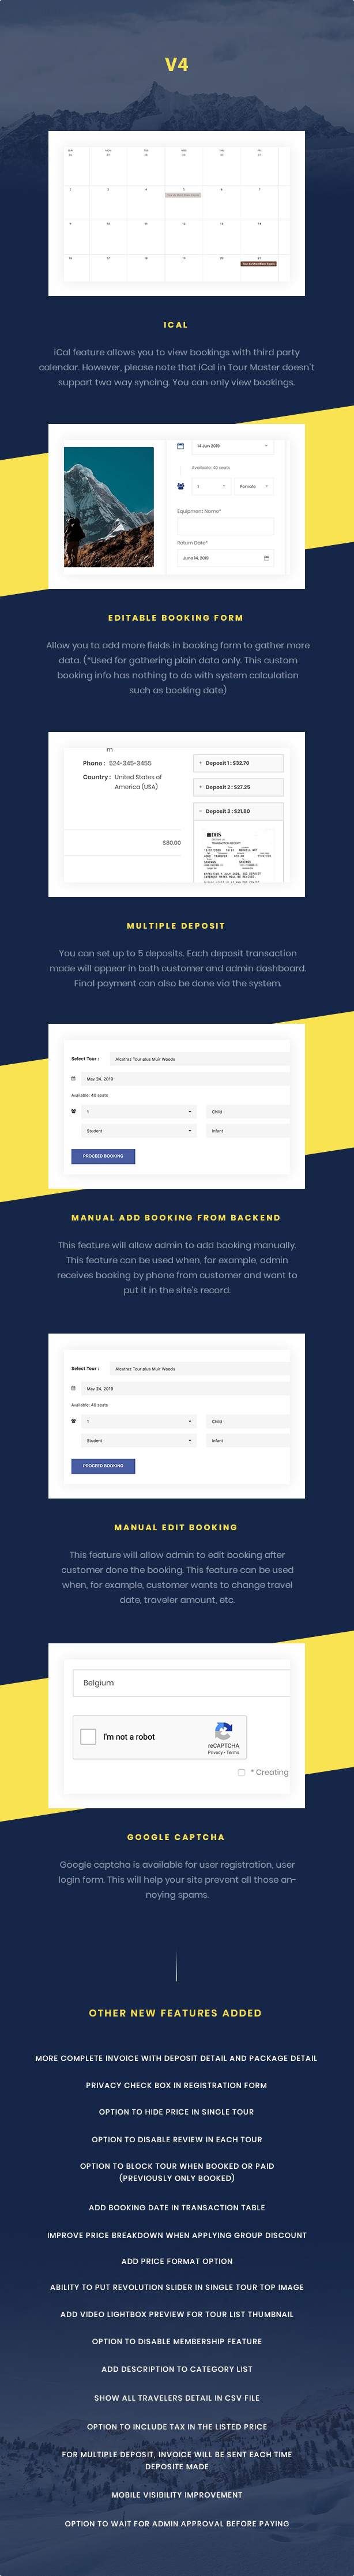 screen v4 features n2 - Travel Tour Booking WordPress